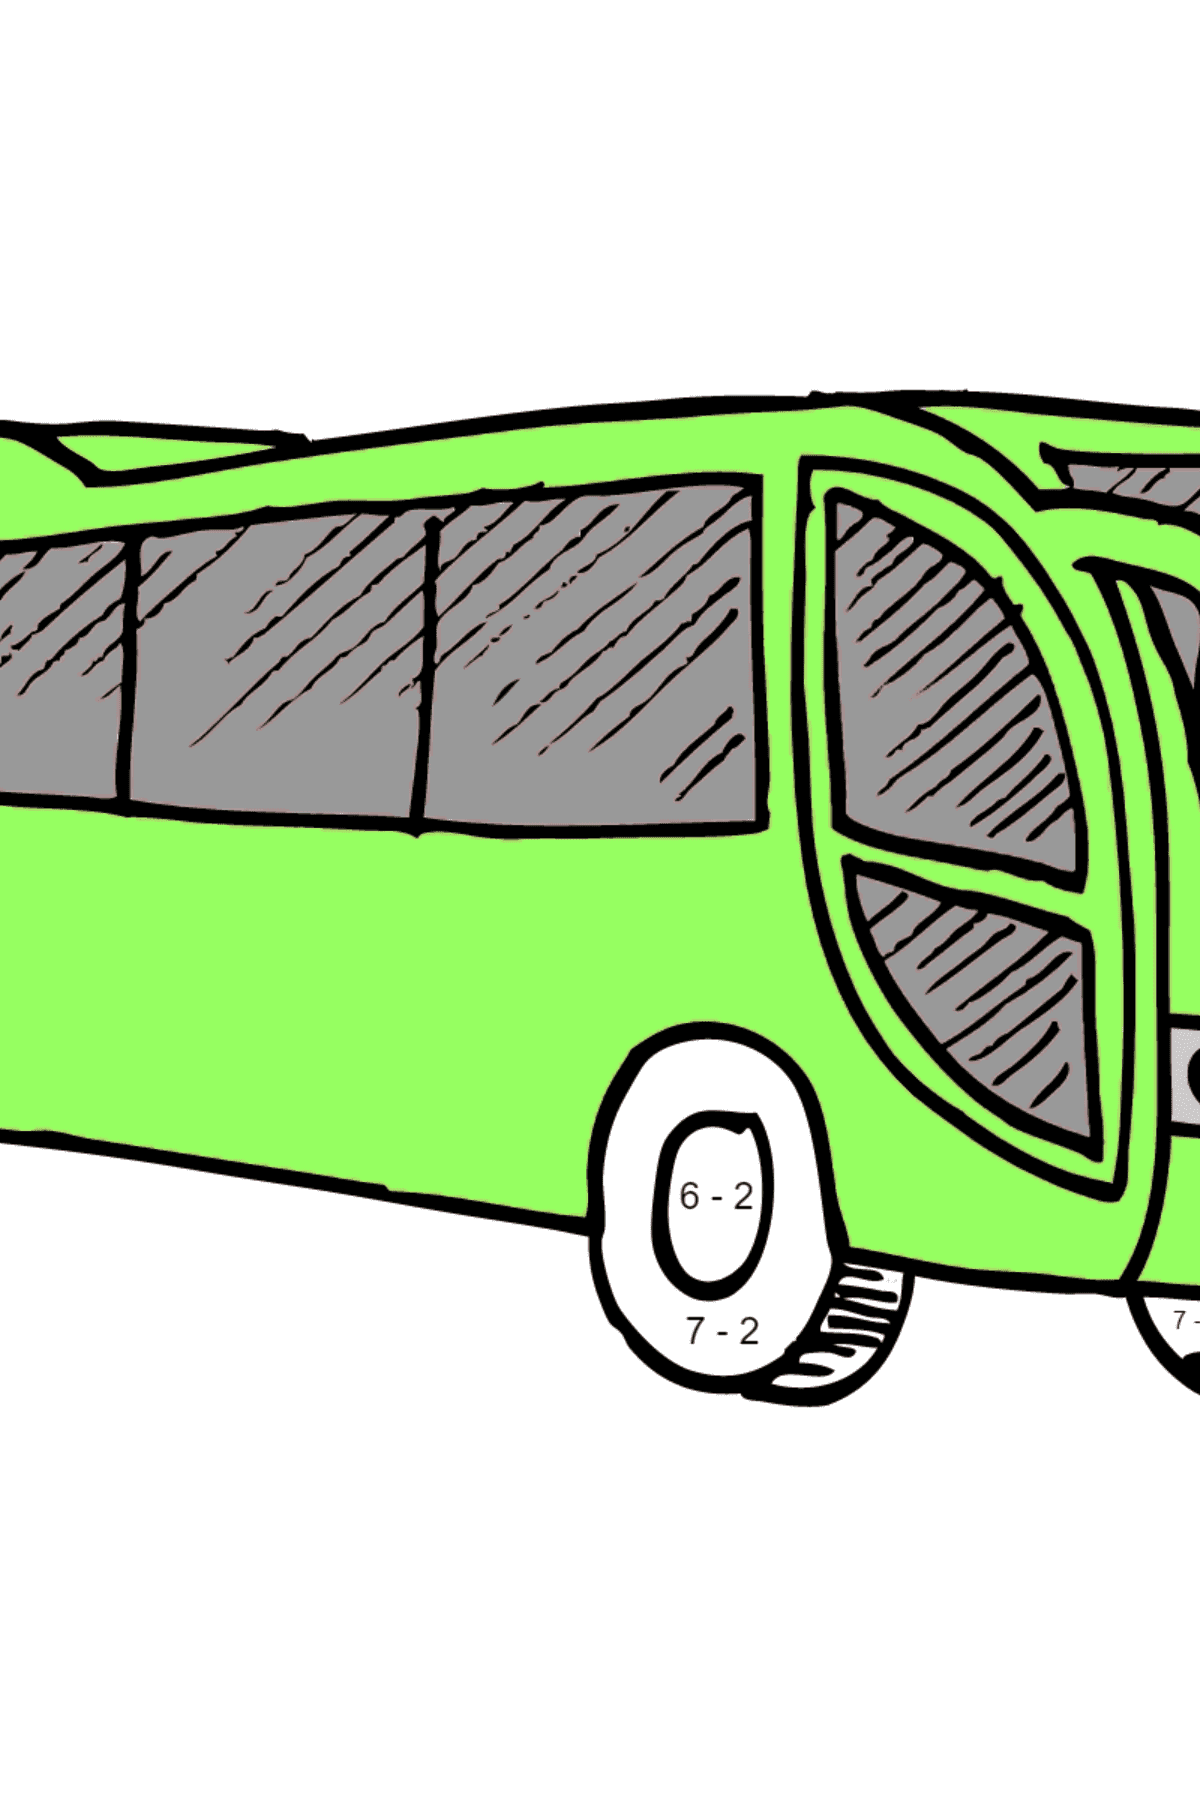 Coloring Page - A Bus is Having Rest - Math Coloring - Subtraction for Kids